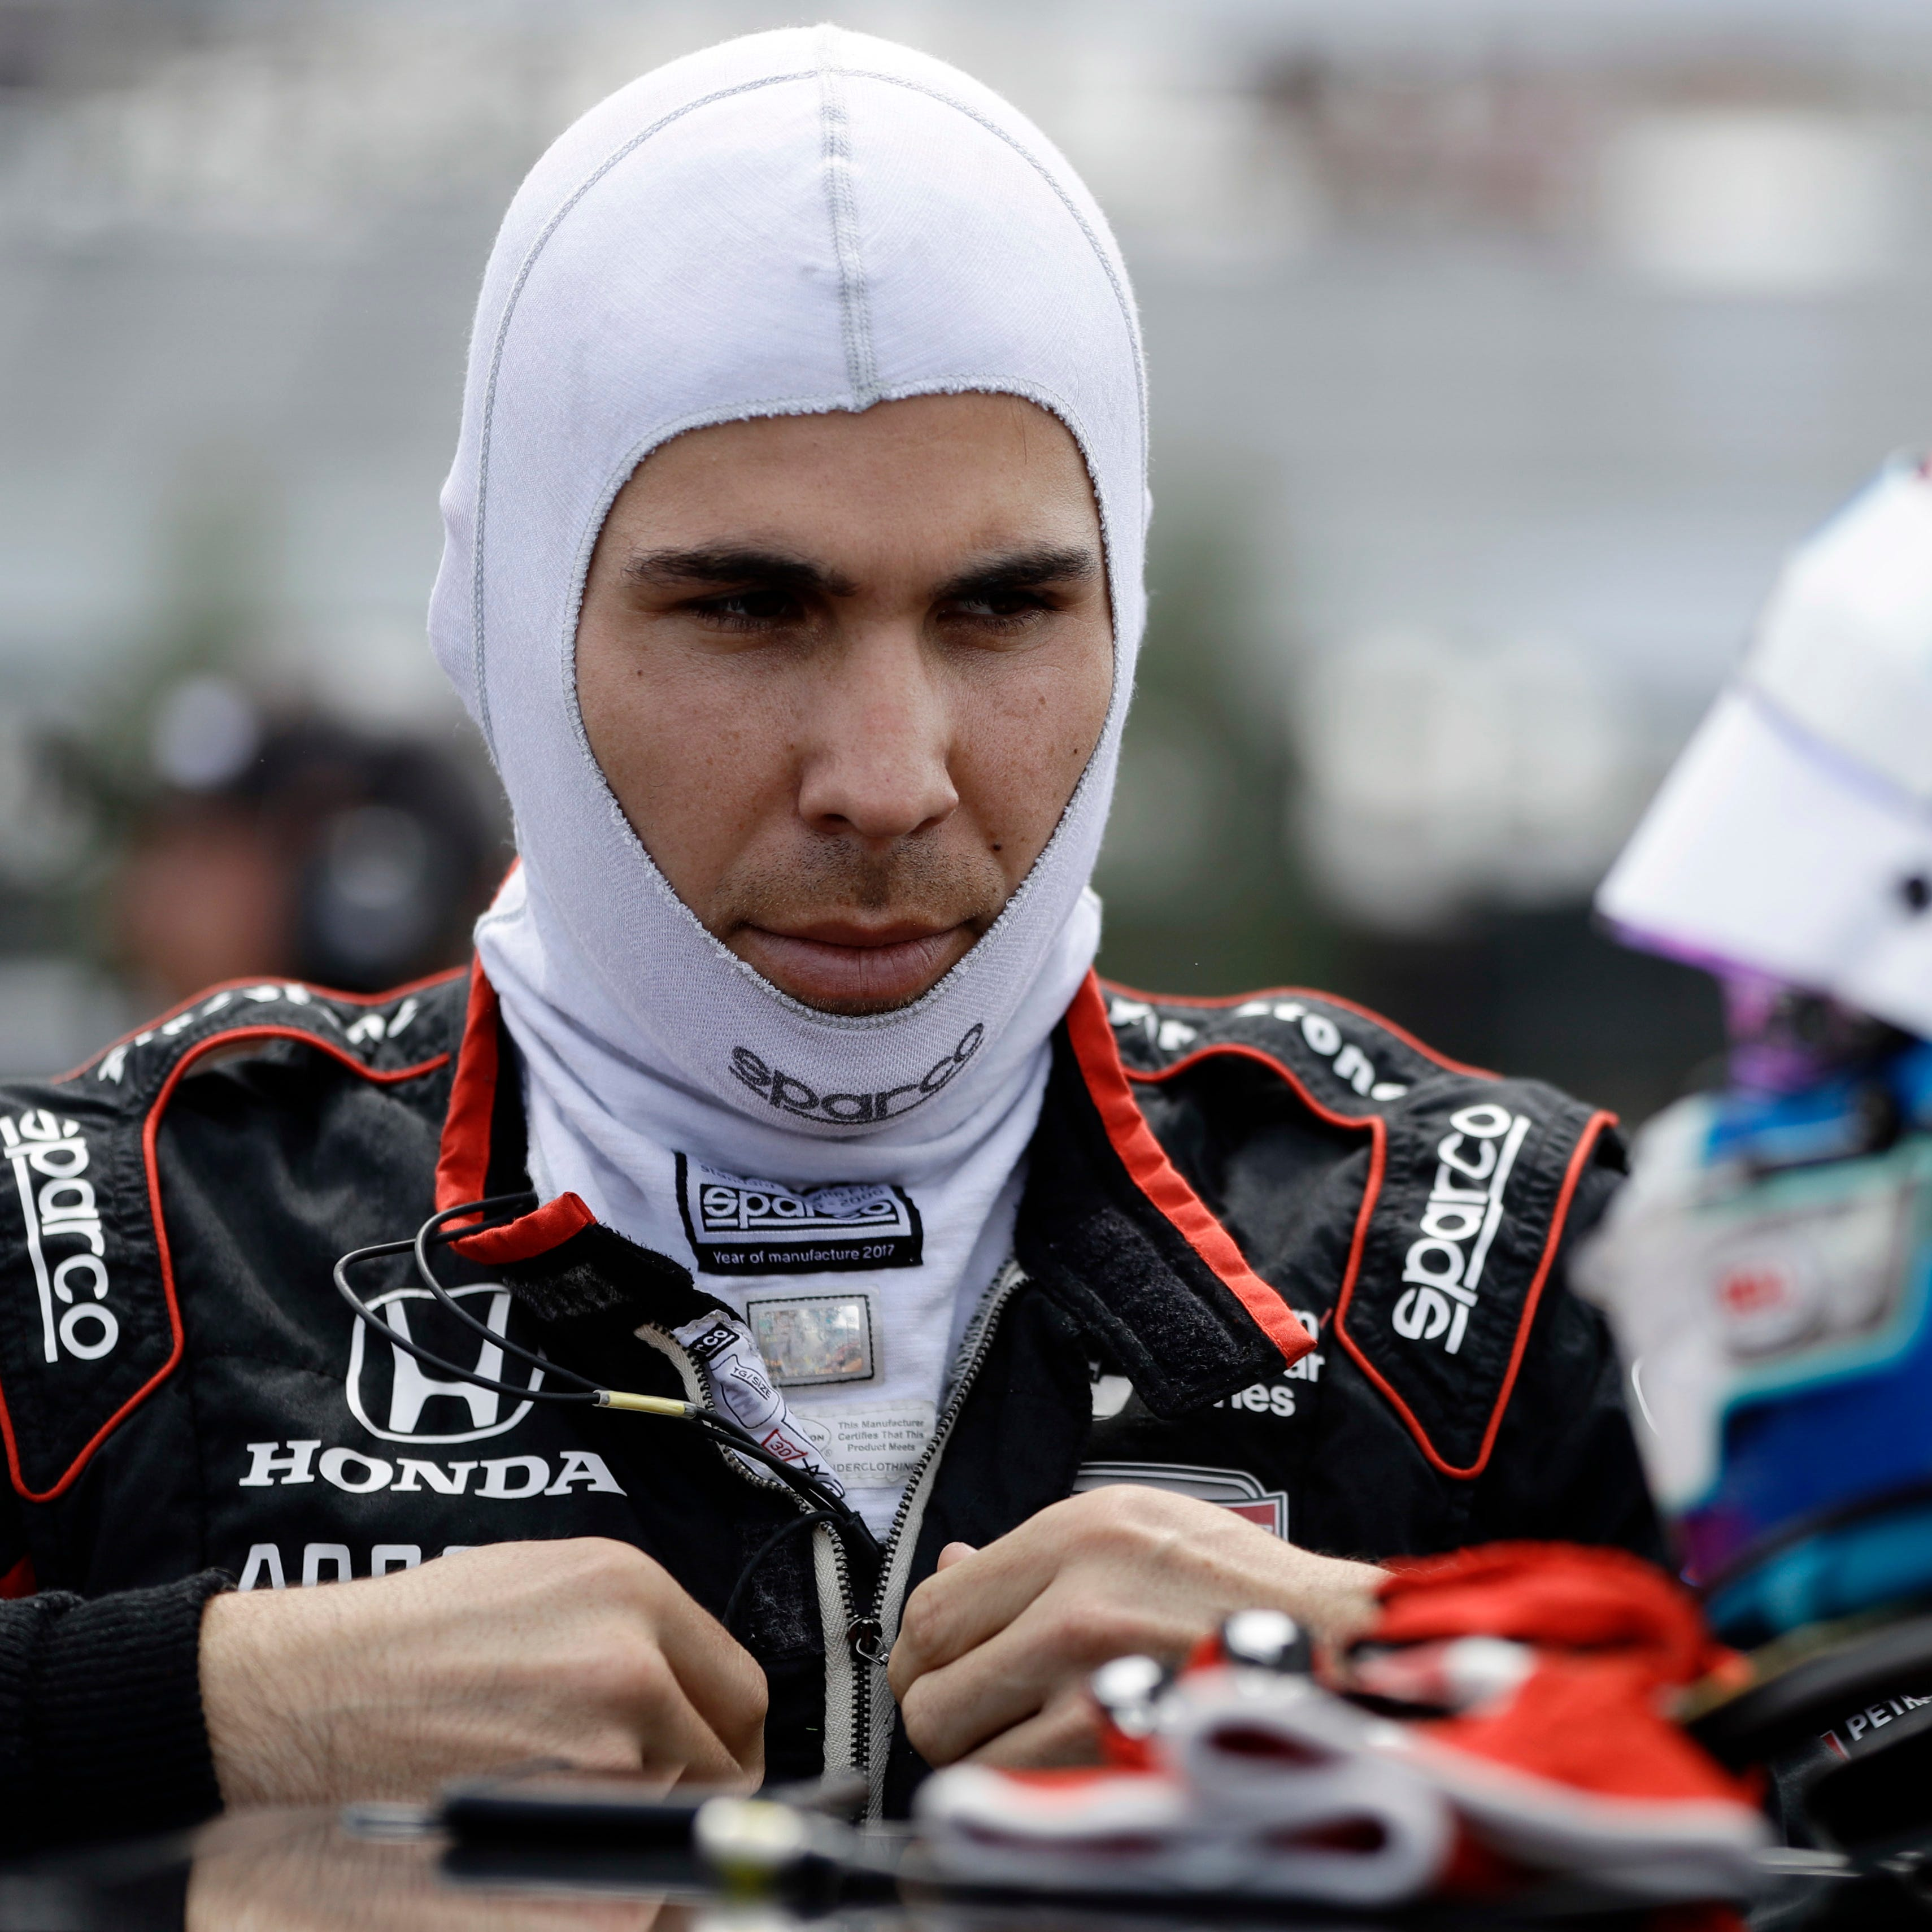 Robert Wickens injures arm, spine, legs in frightening Pocono crash